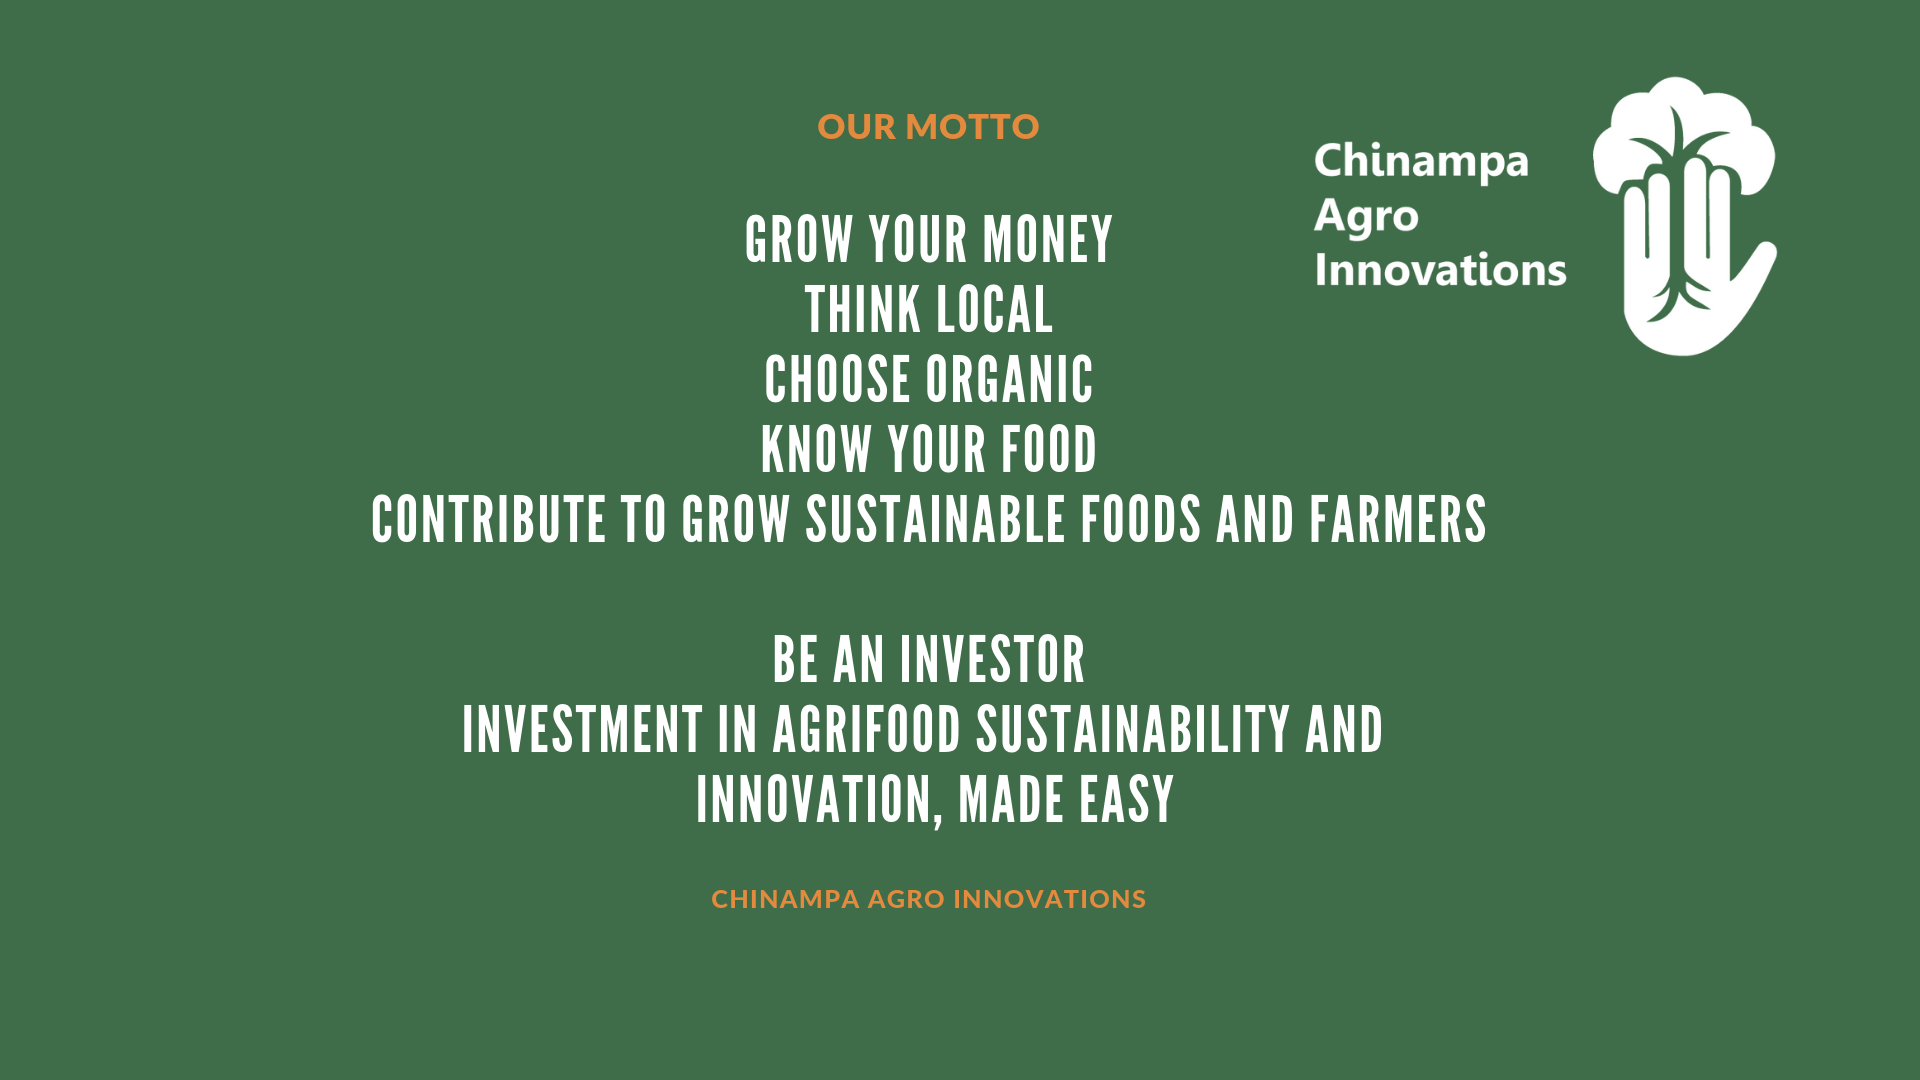 Chinampa_Agro_Business_(1).png